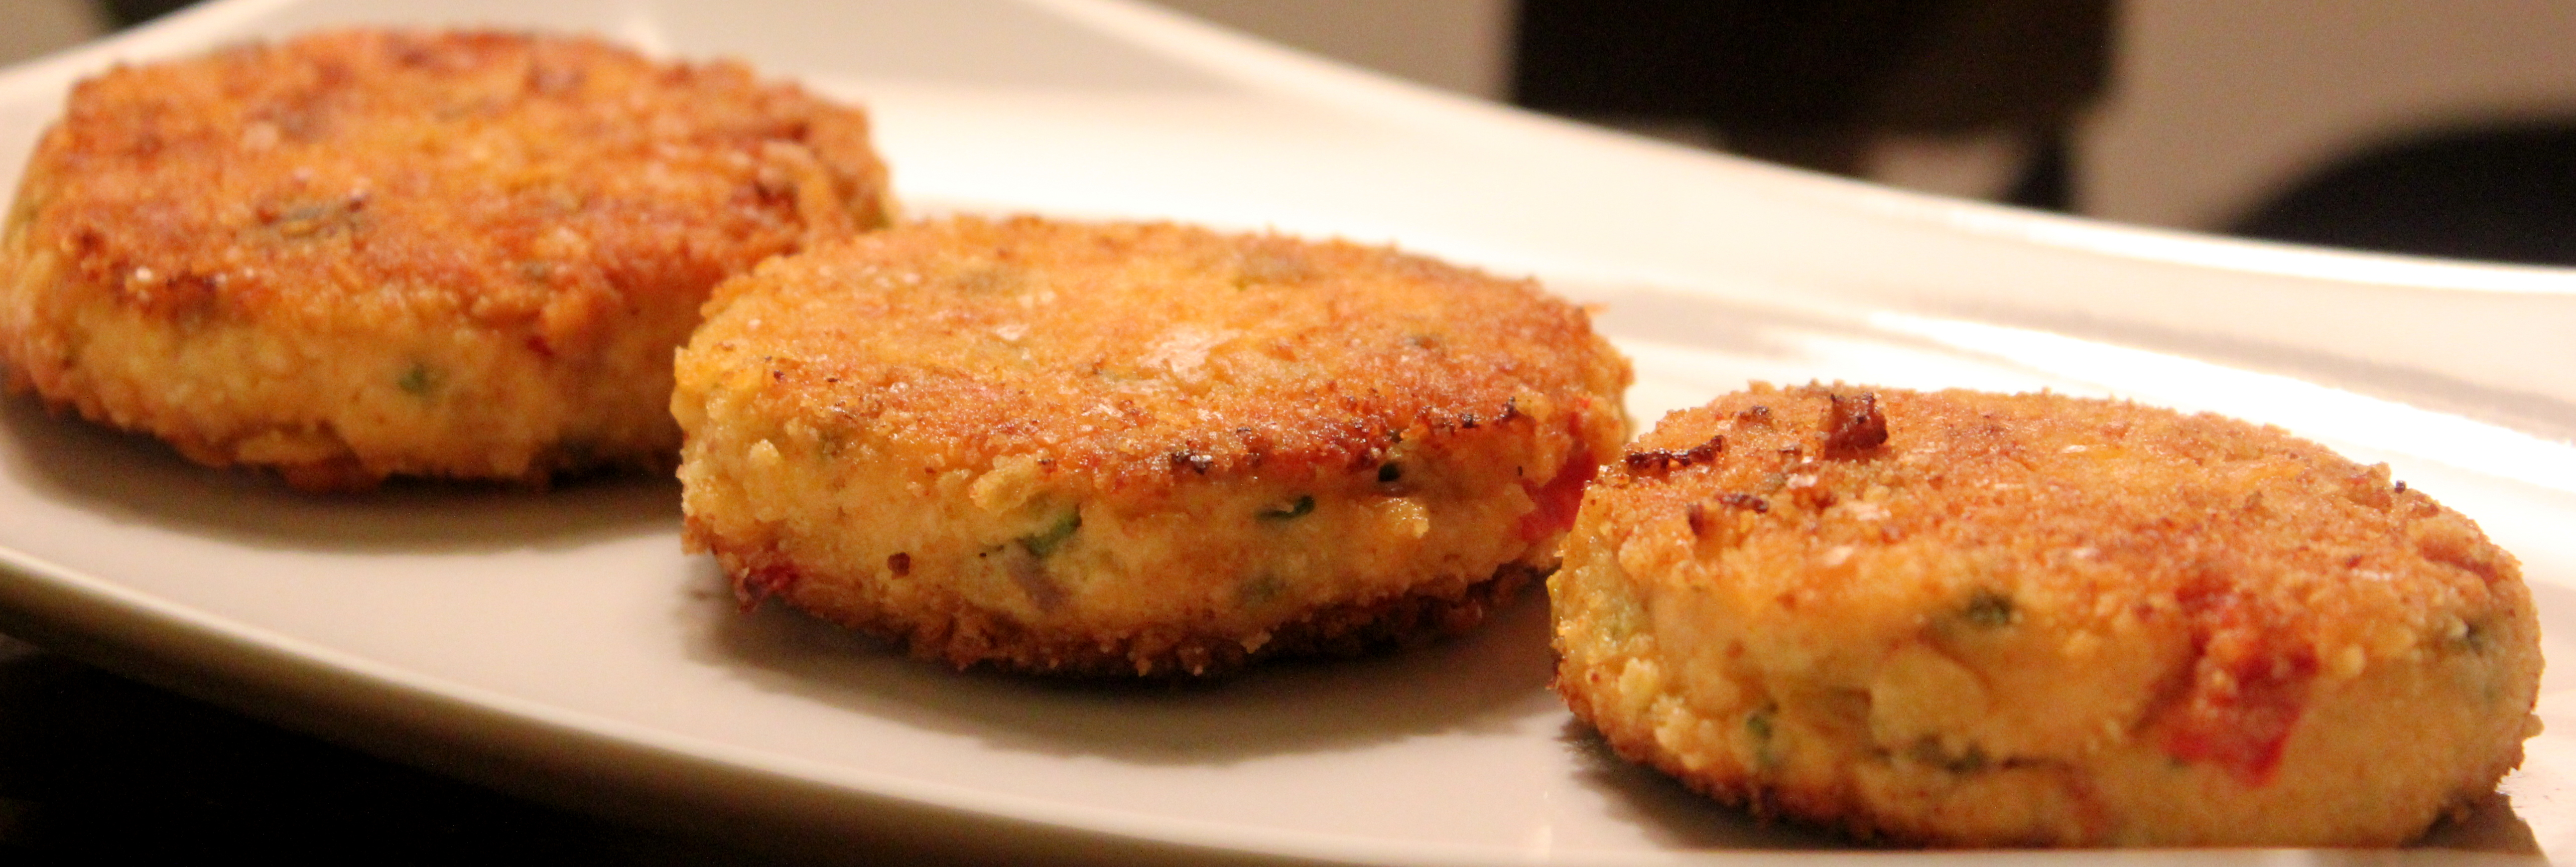 Salmon Cakes / Mildly Spiced Flaked Salmon Patties | Aish Cooks